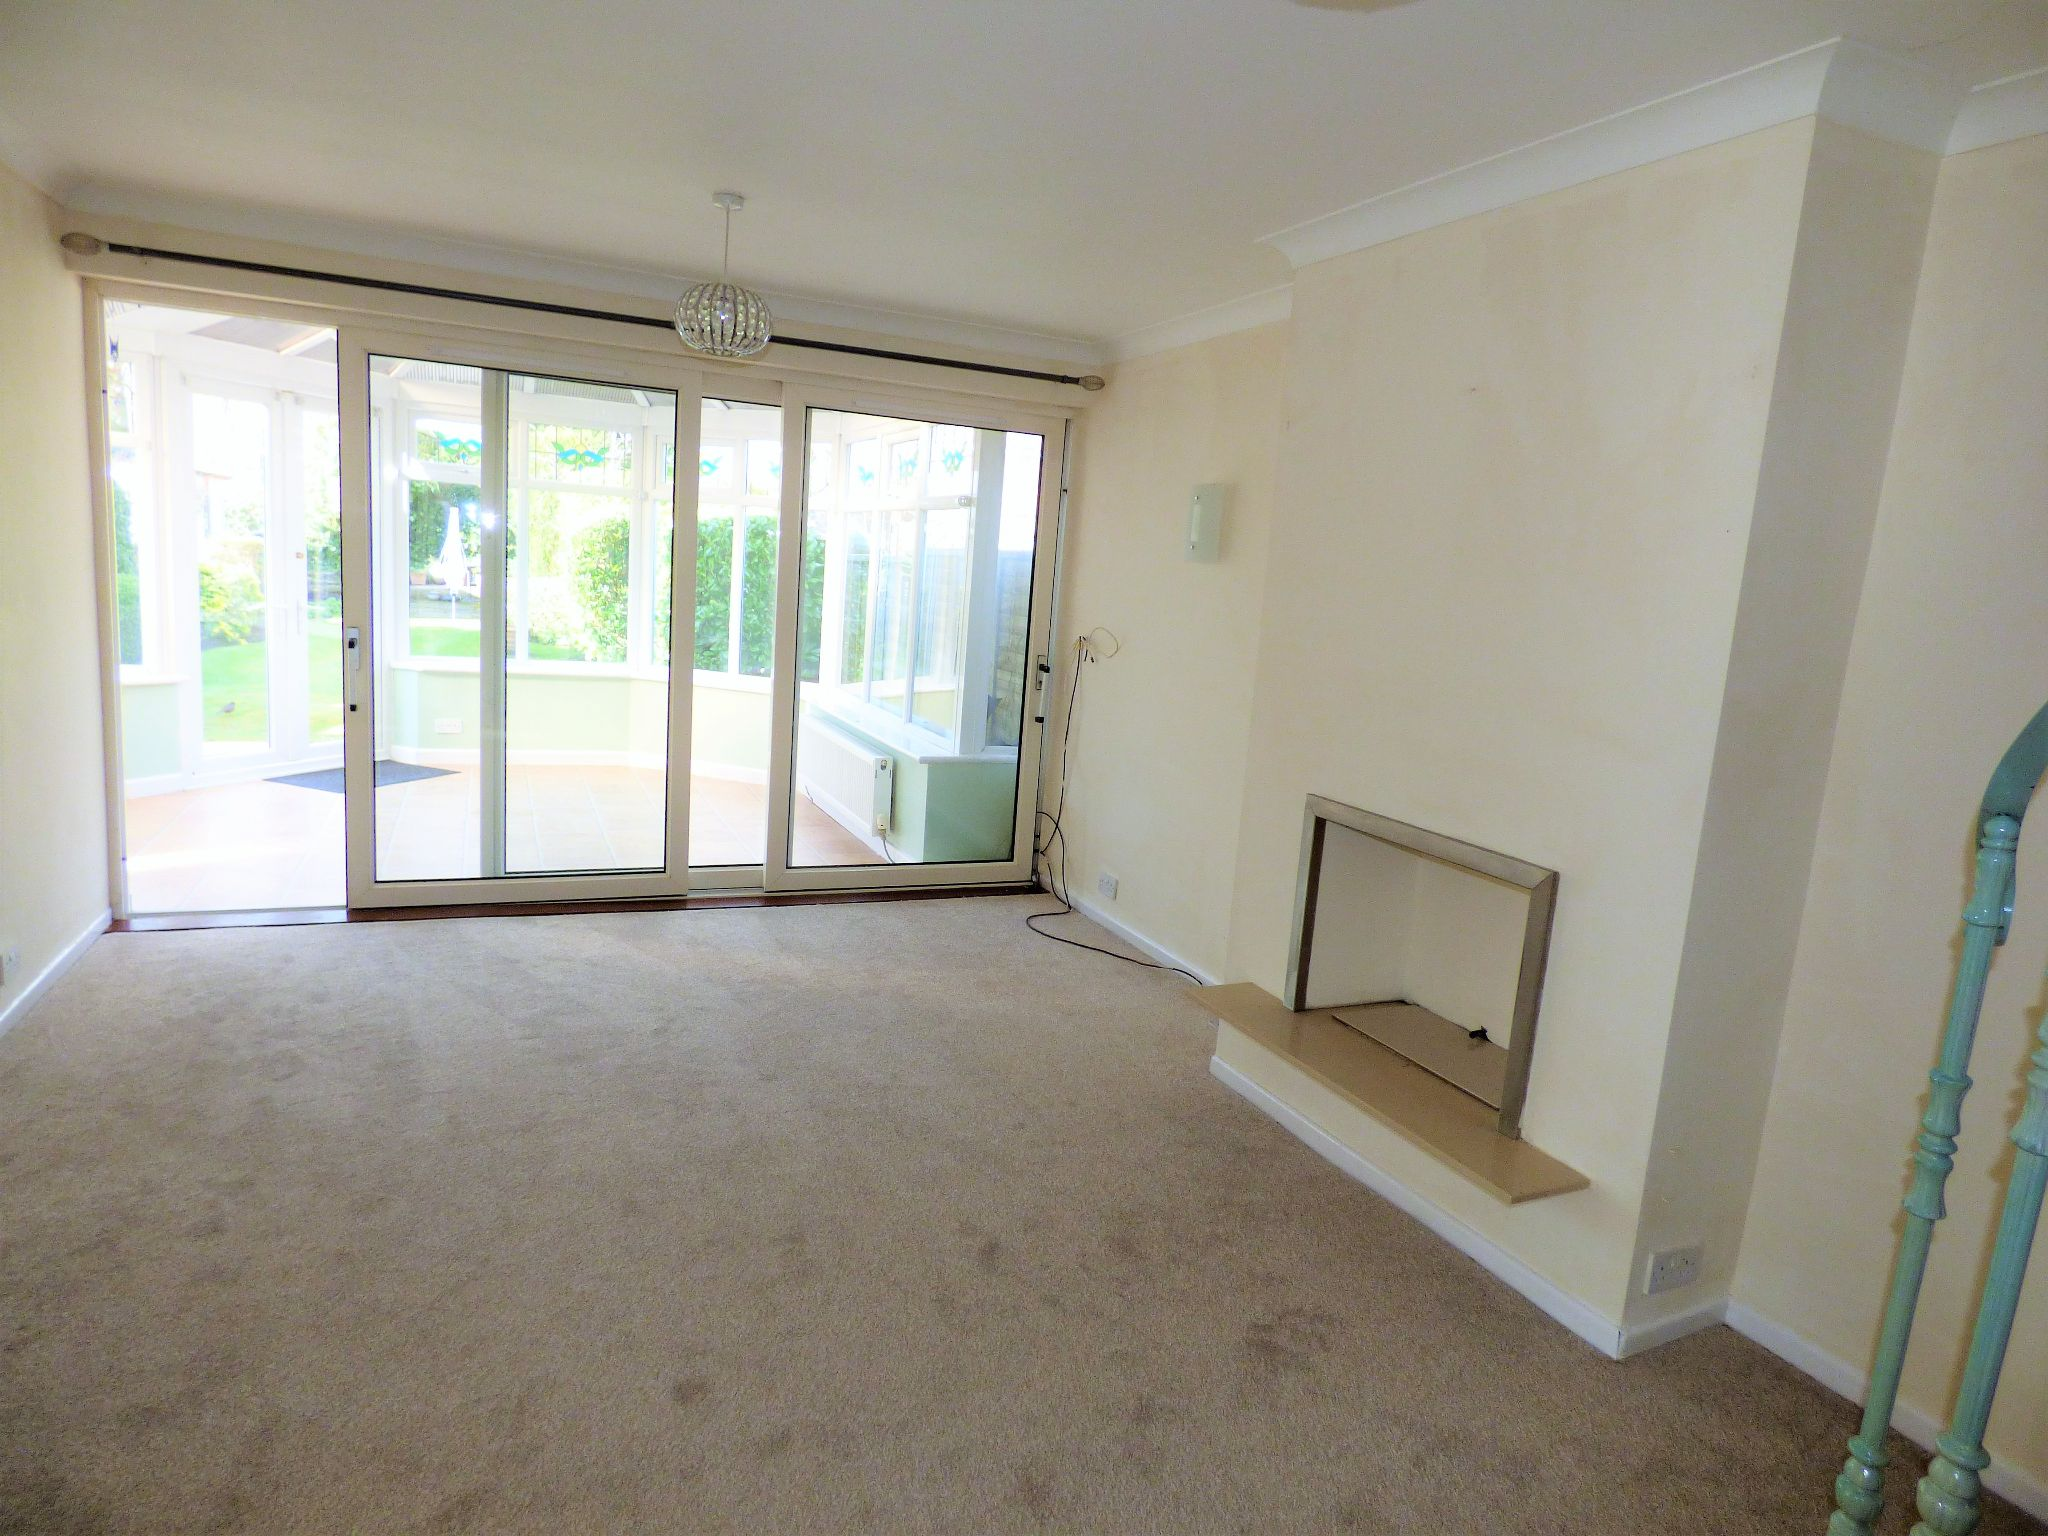 3 Bedroom Semi-detached Bungalow For Sale - Photograph 8